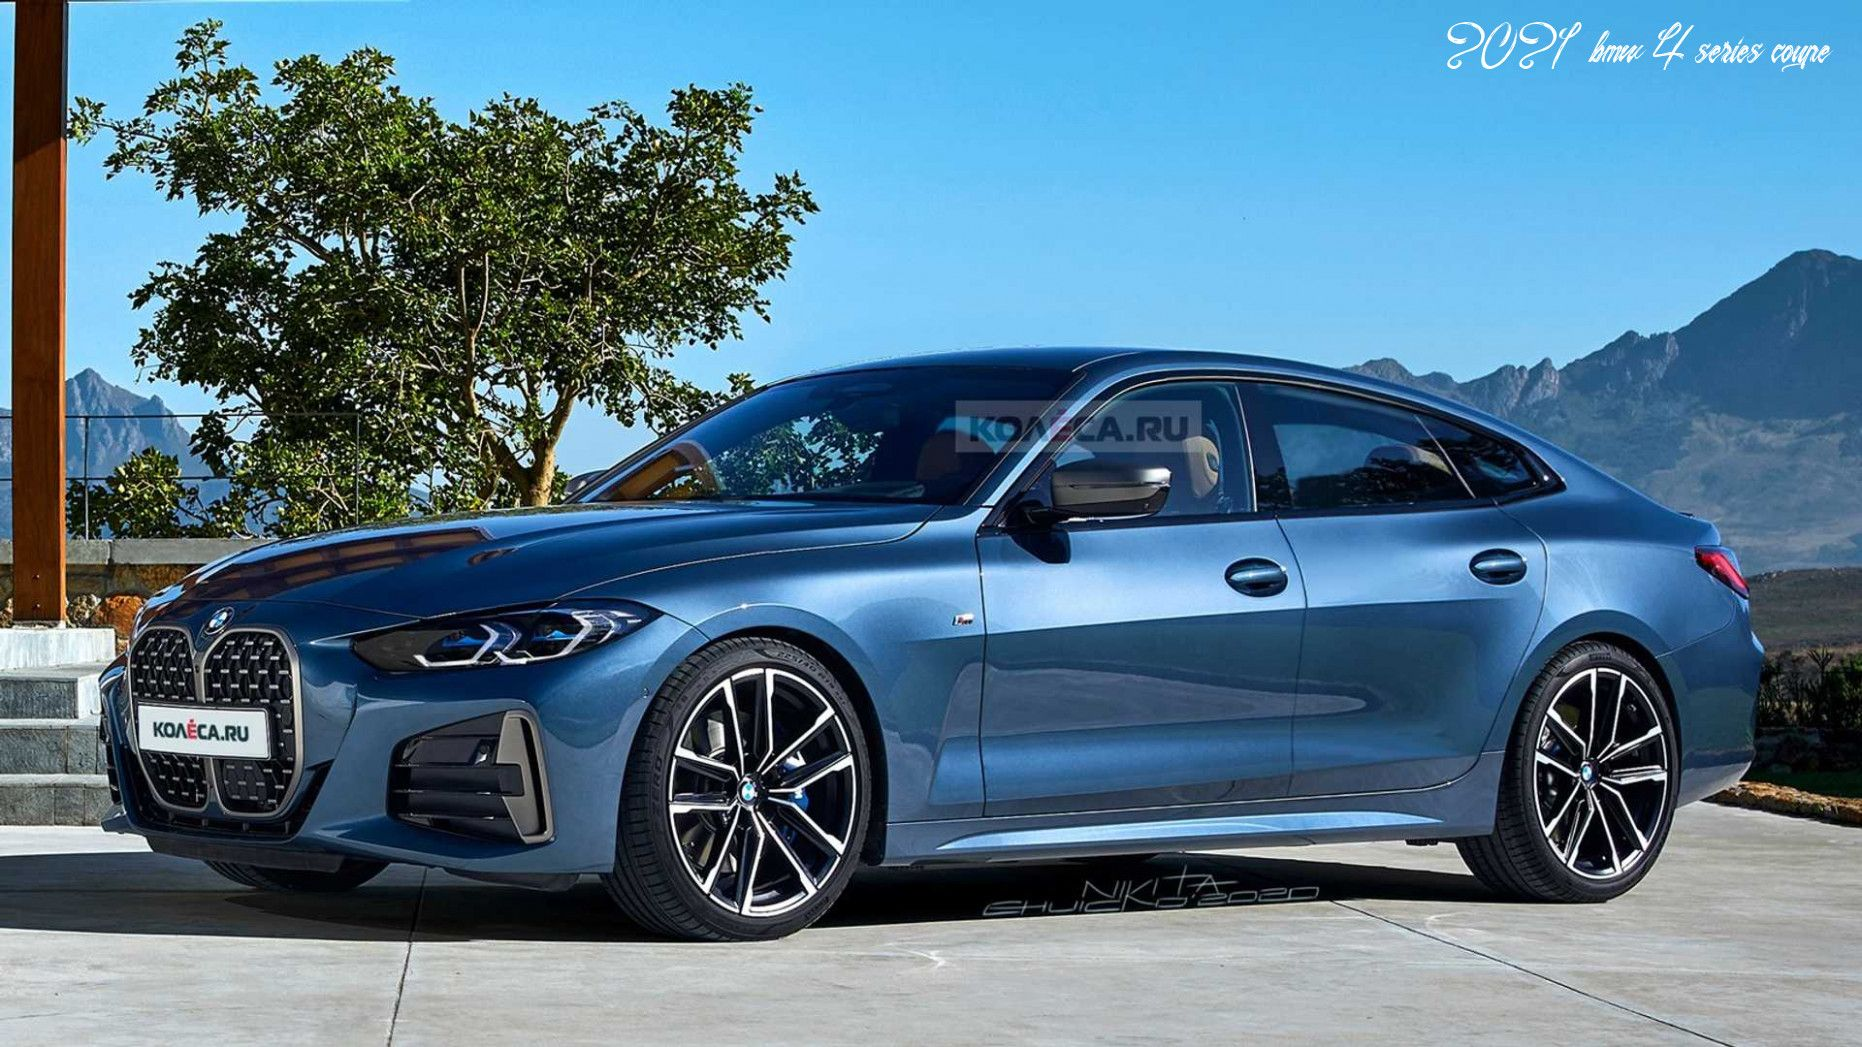 2021 Bmw 4 Series Coupe Prices In 2020 Bmw 4 Series Coupe Bmw Gran Coupe